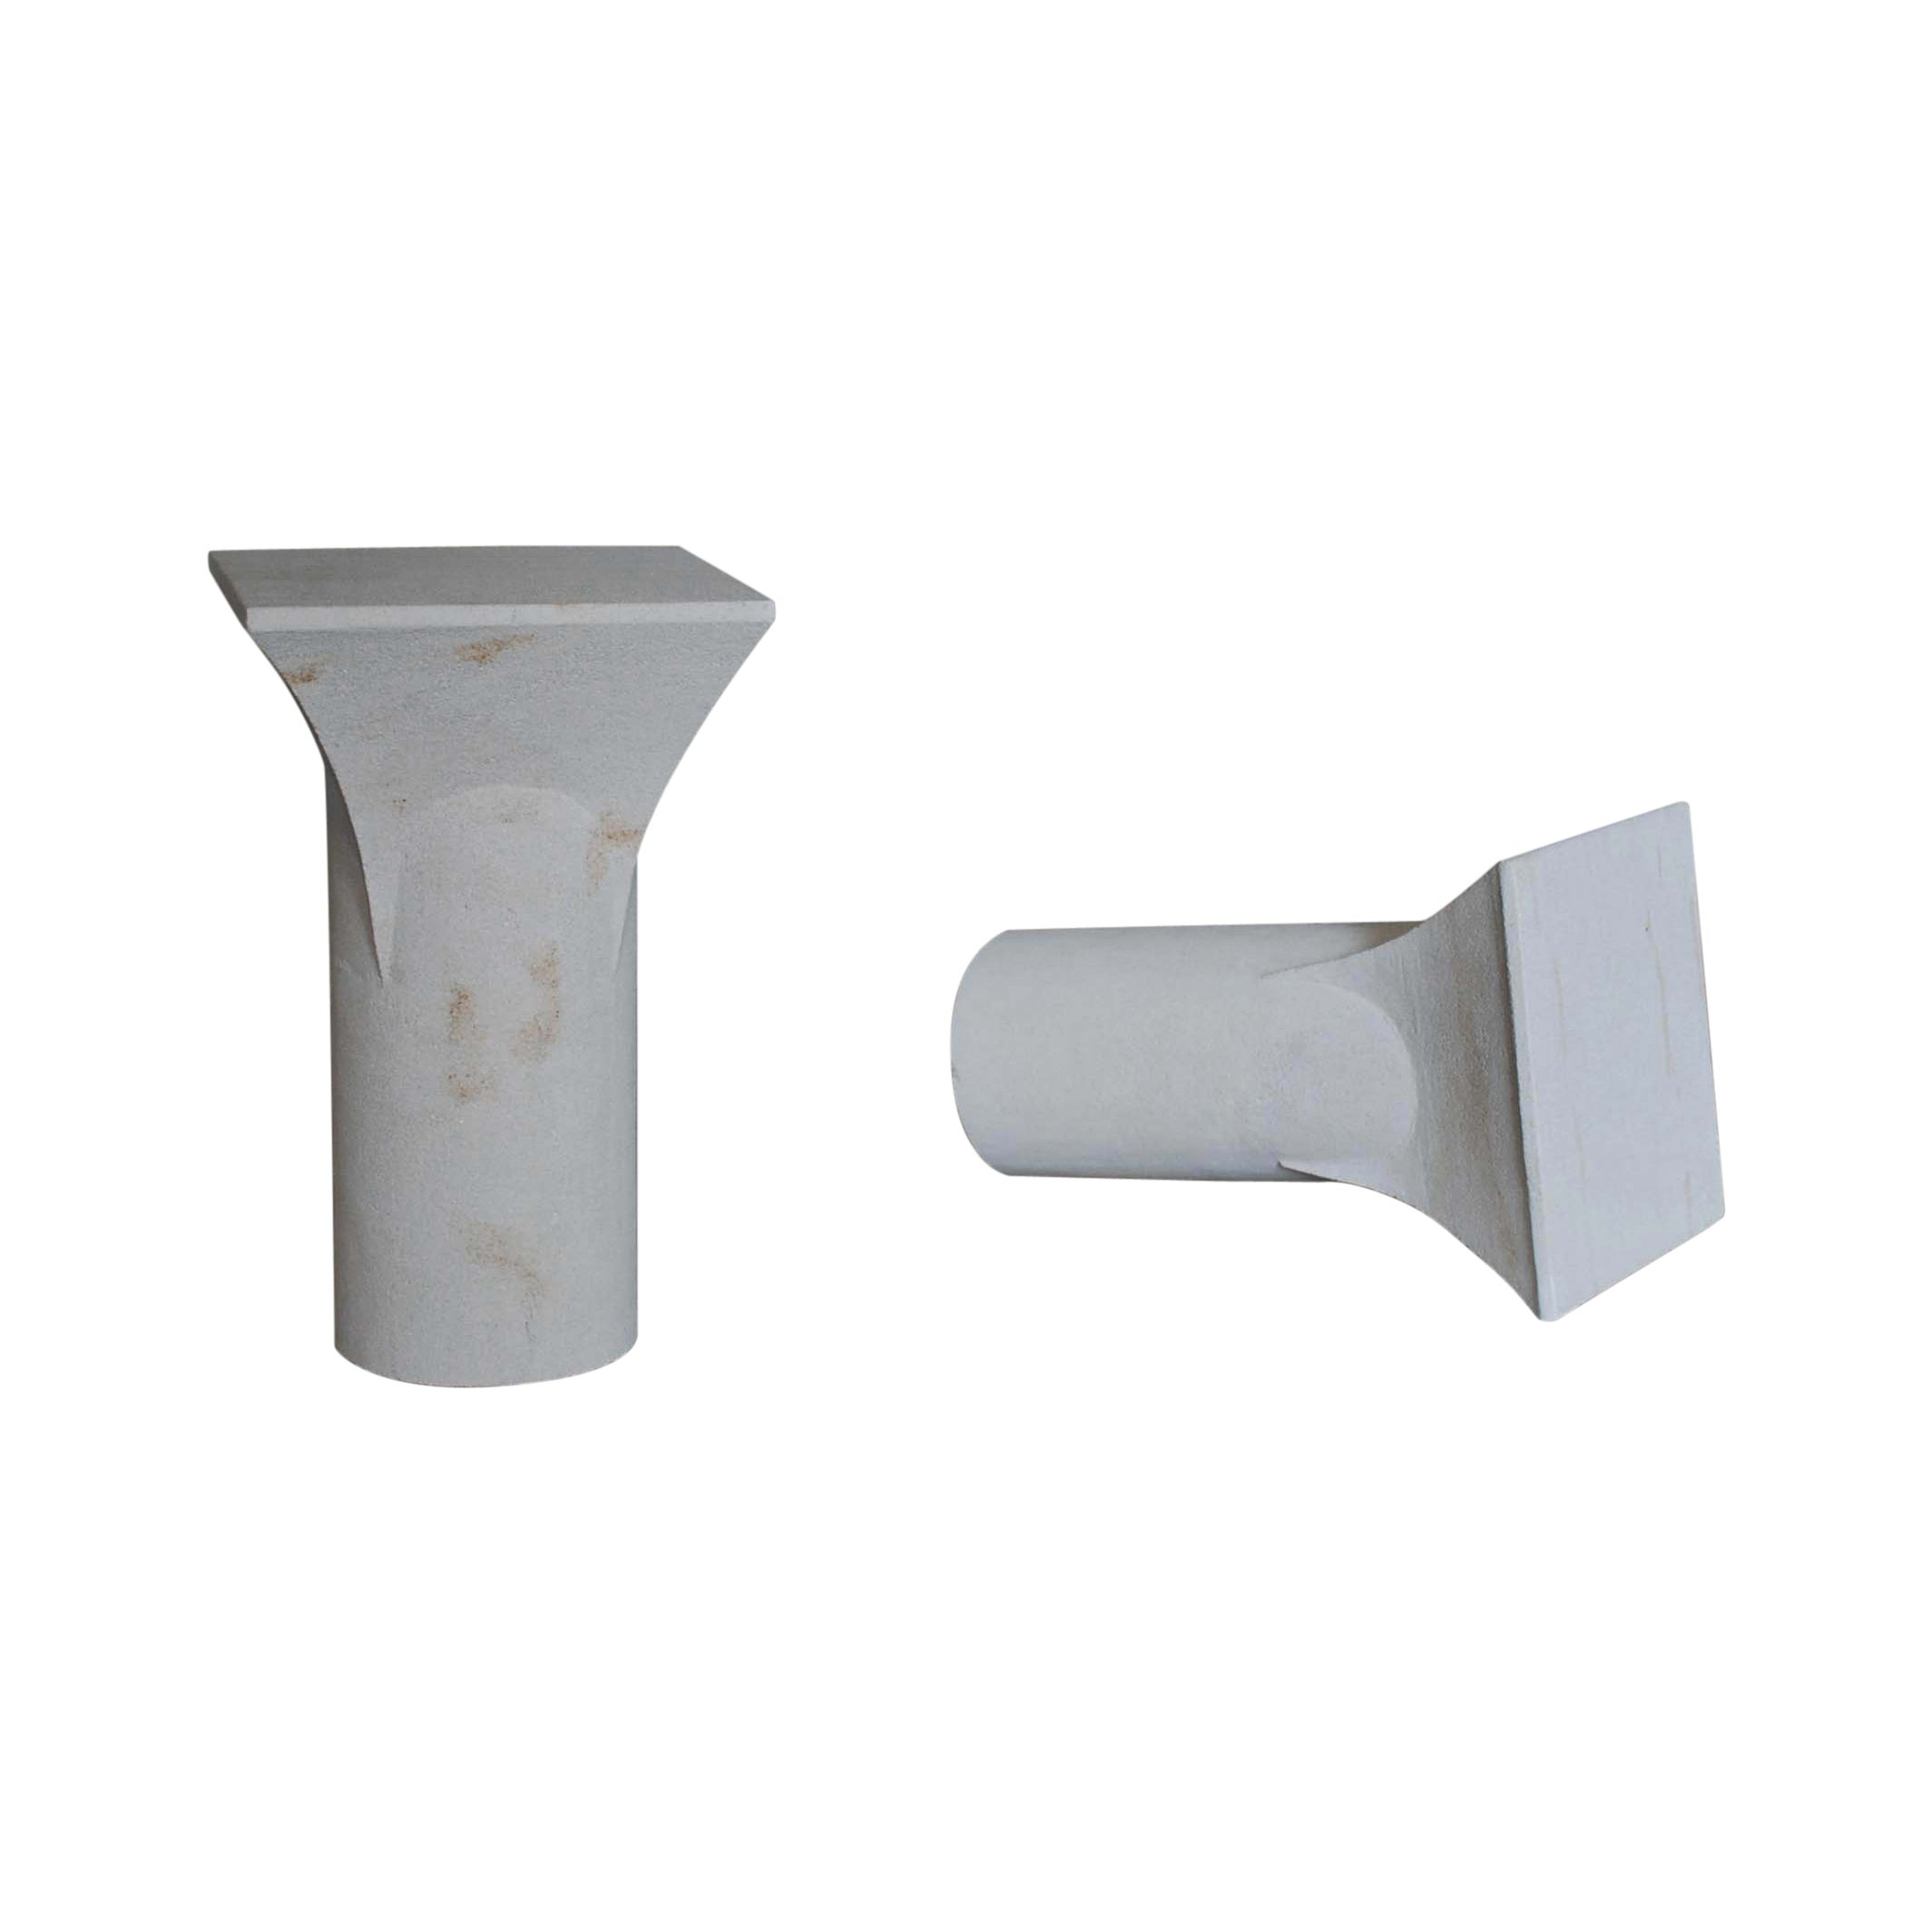 Pair of Sireul Stone Side Tables, Frederic Saulou